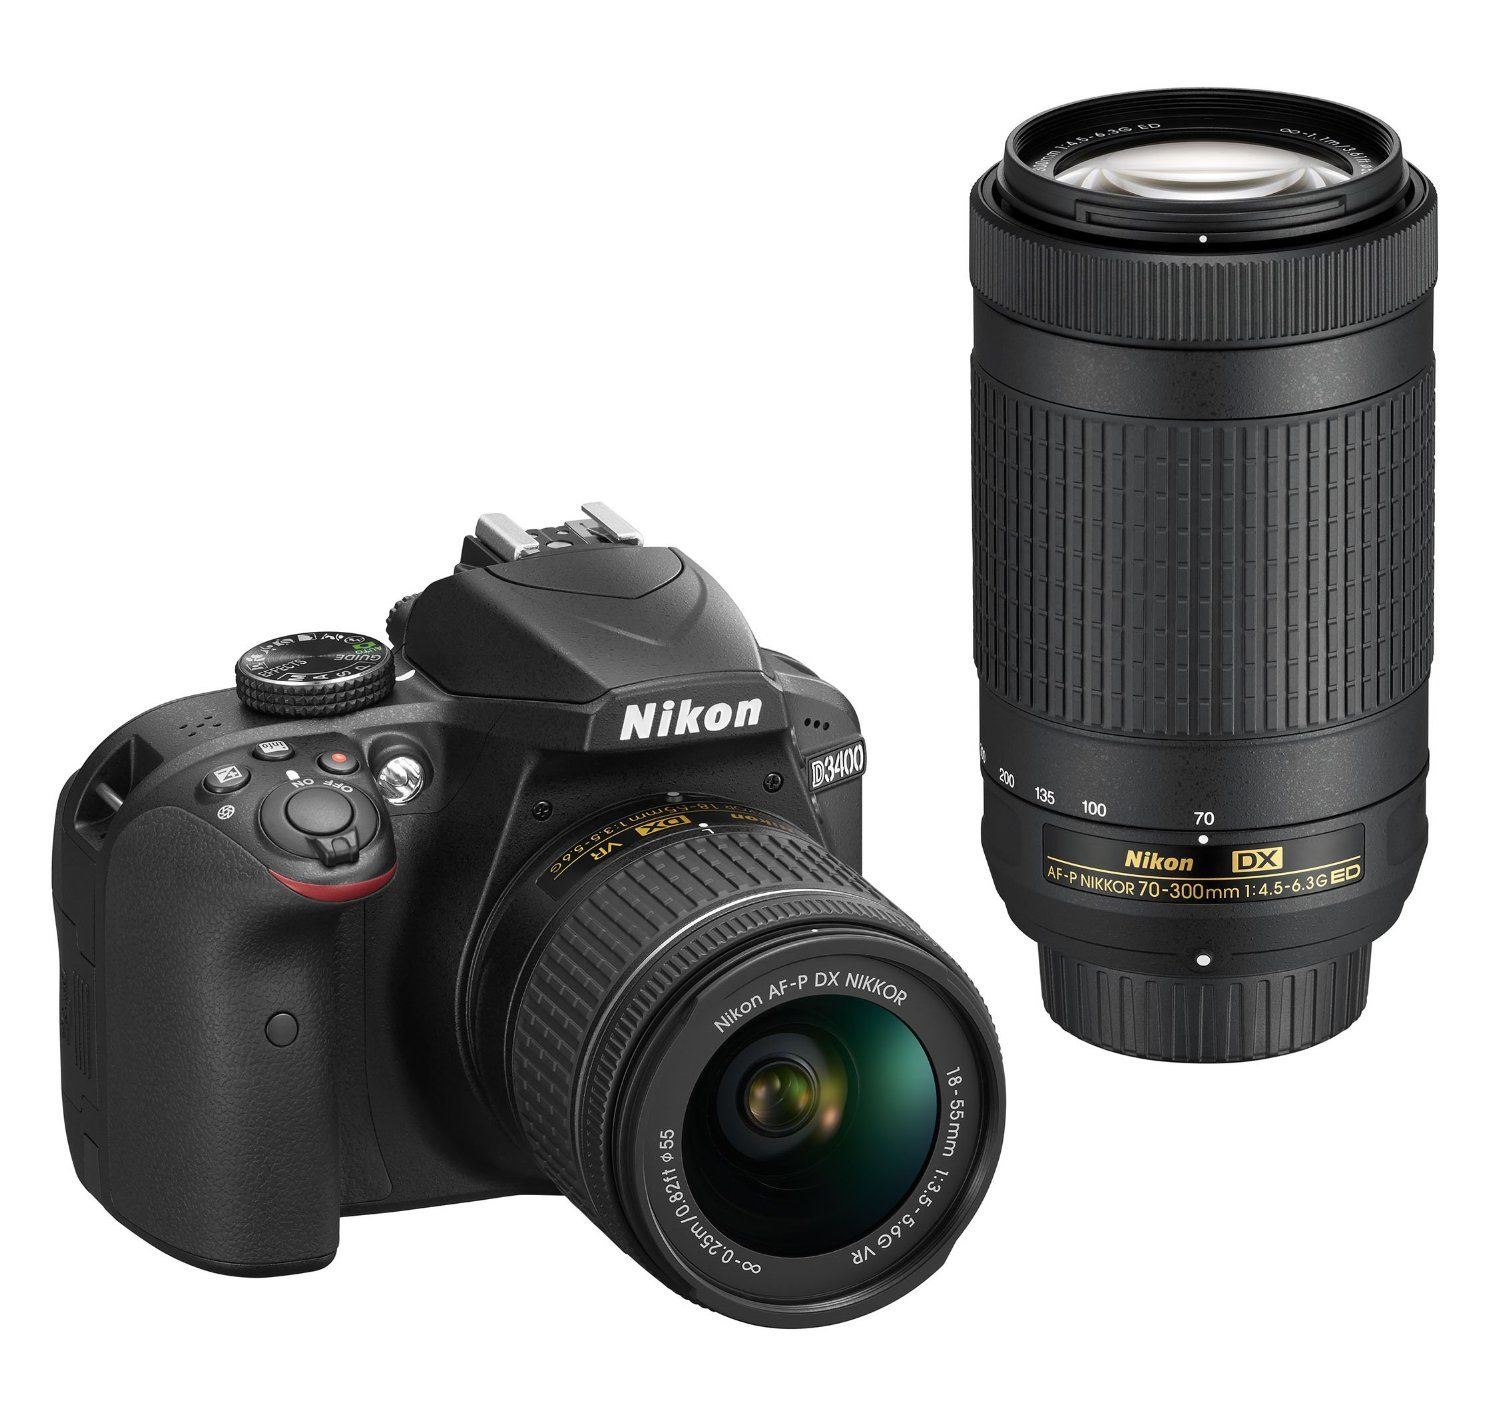 This Nikon D3400 DSLR has the following features: Snap